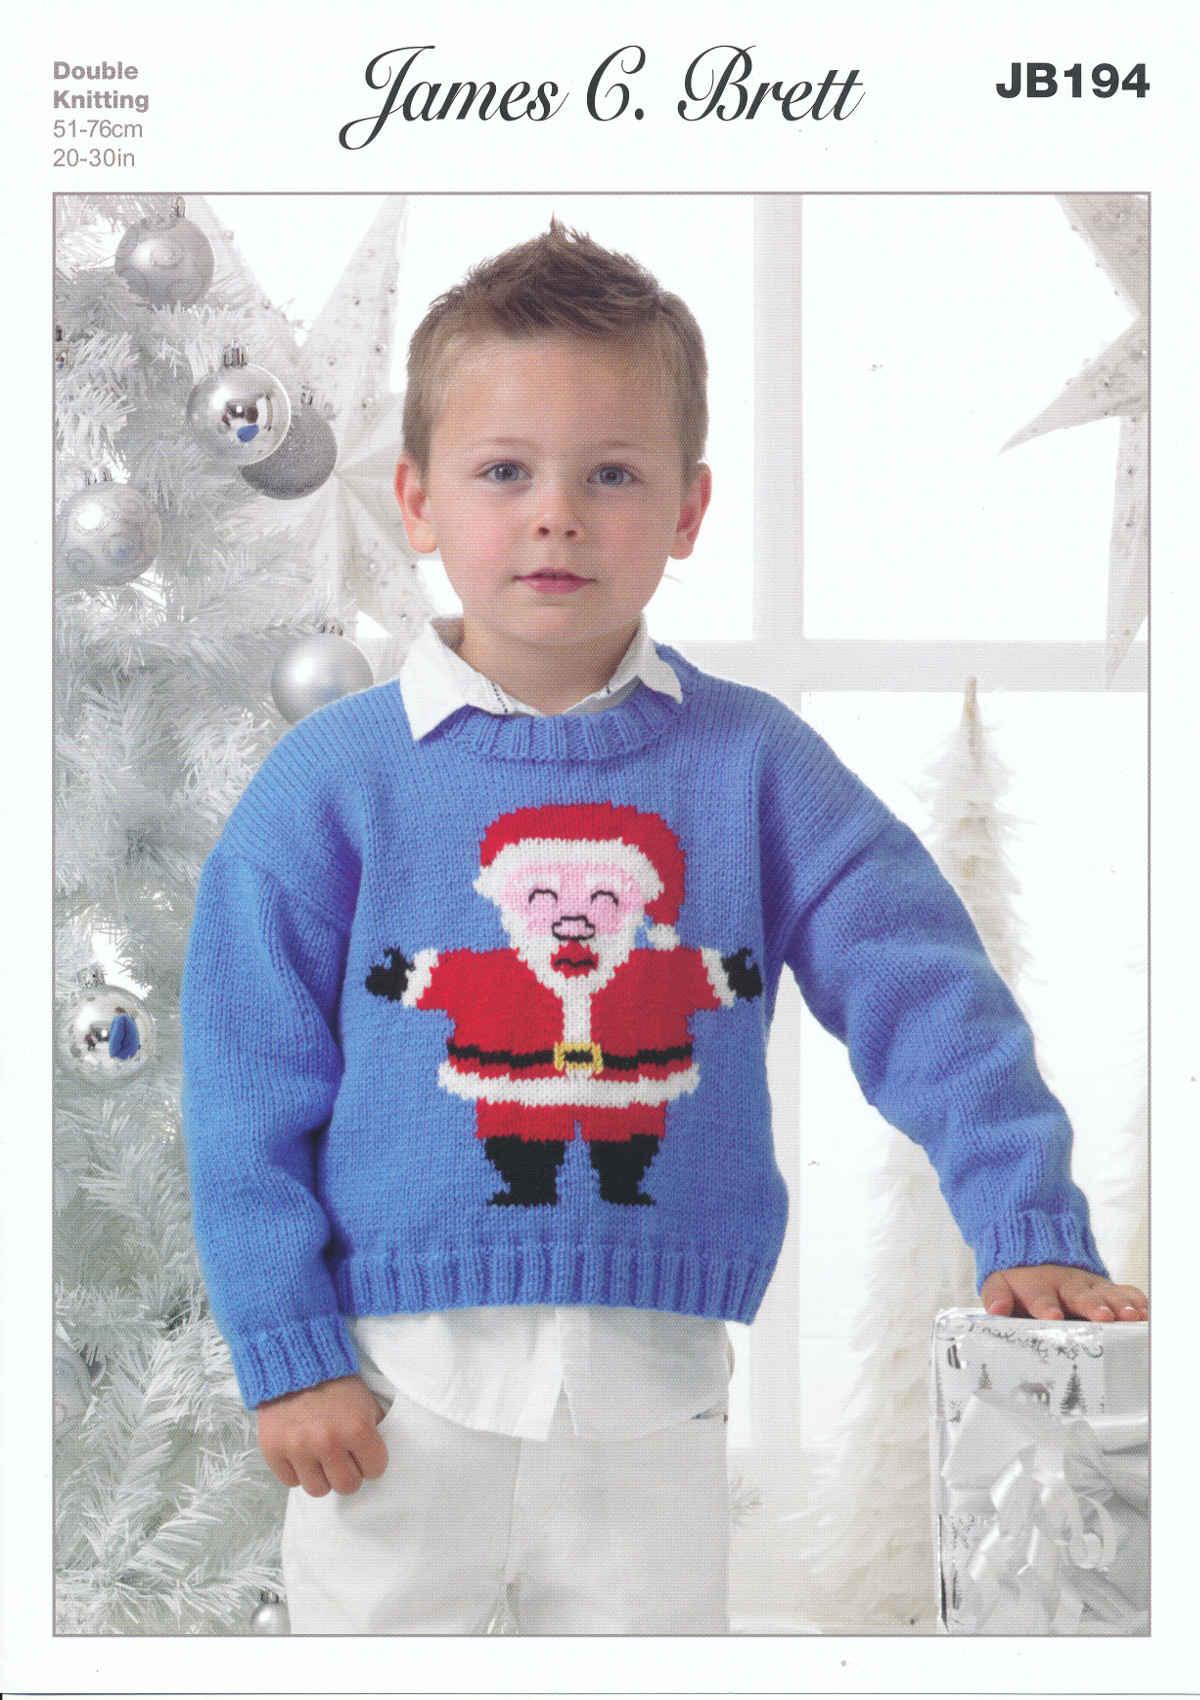 Sirdar Christmas Jumper Knitting Patterns : James Brett Double Knitting Pattern Kids Christmas Santa Jumper Sweater JB194...